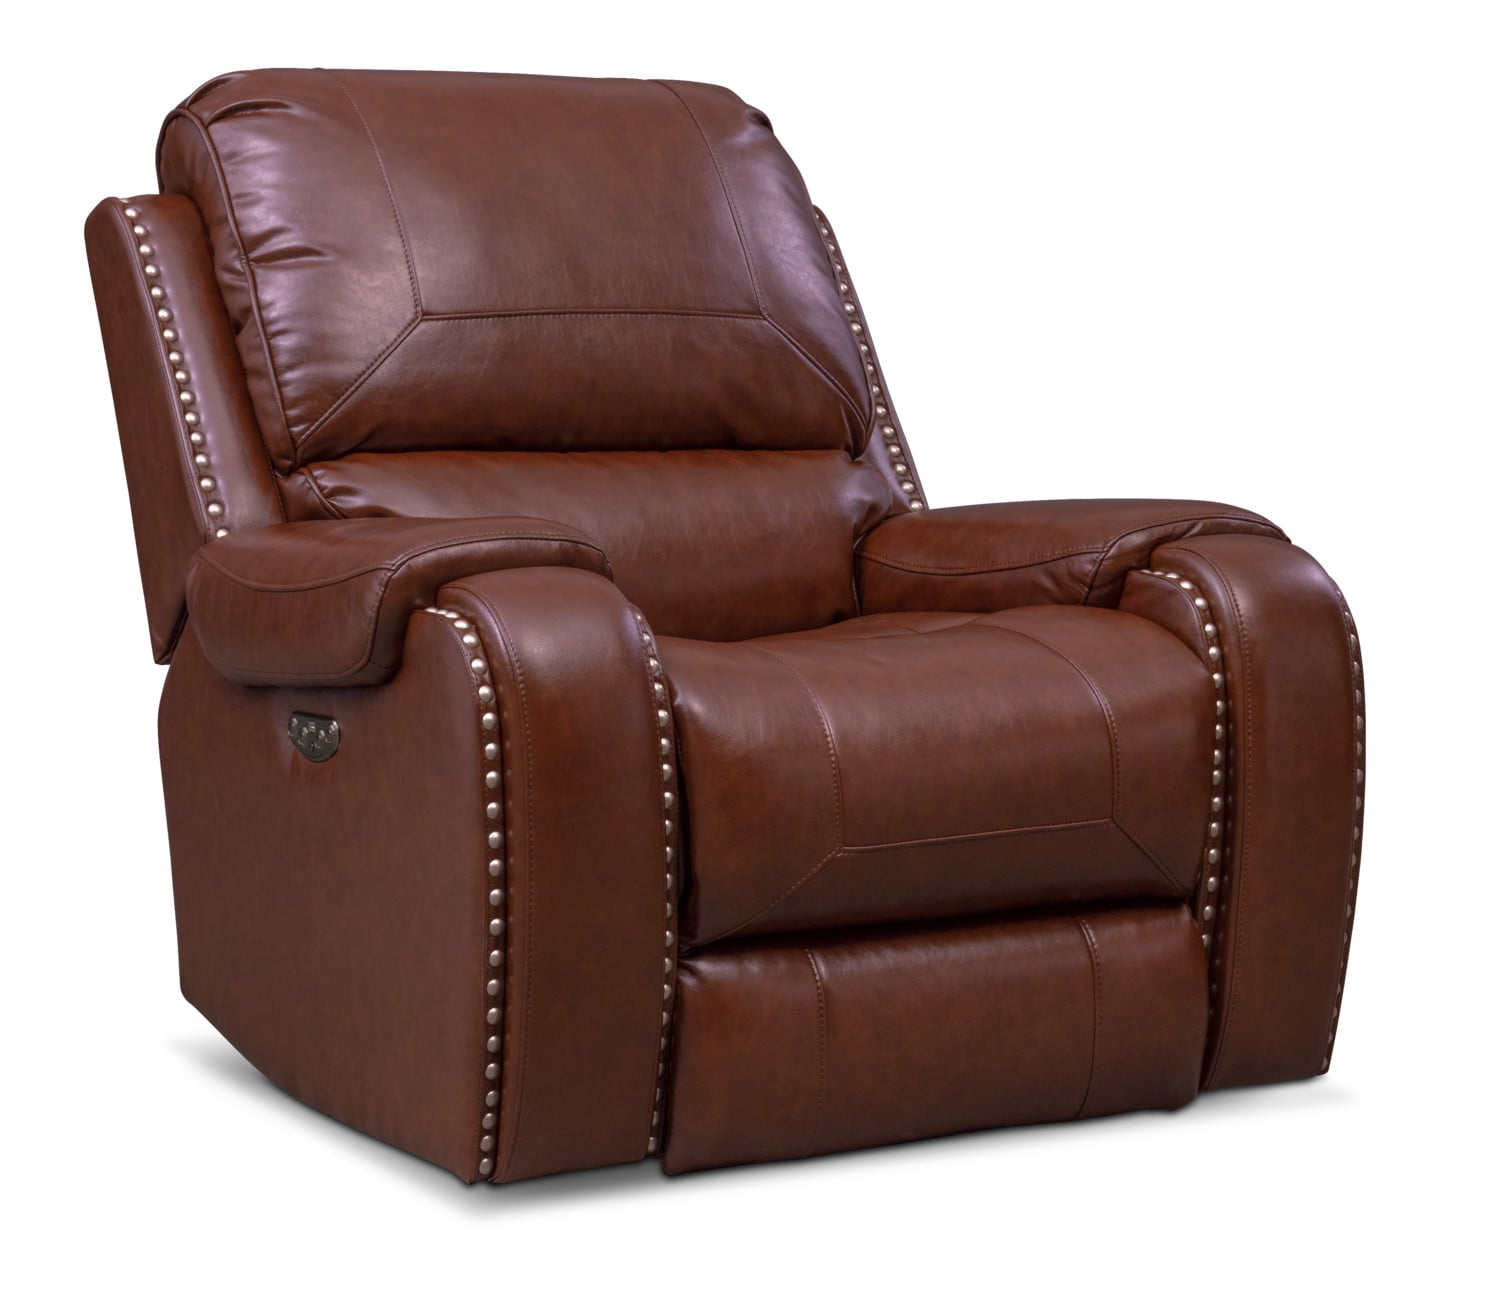 Living Room Furniture - Austin Dual Power Recliner